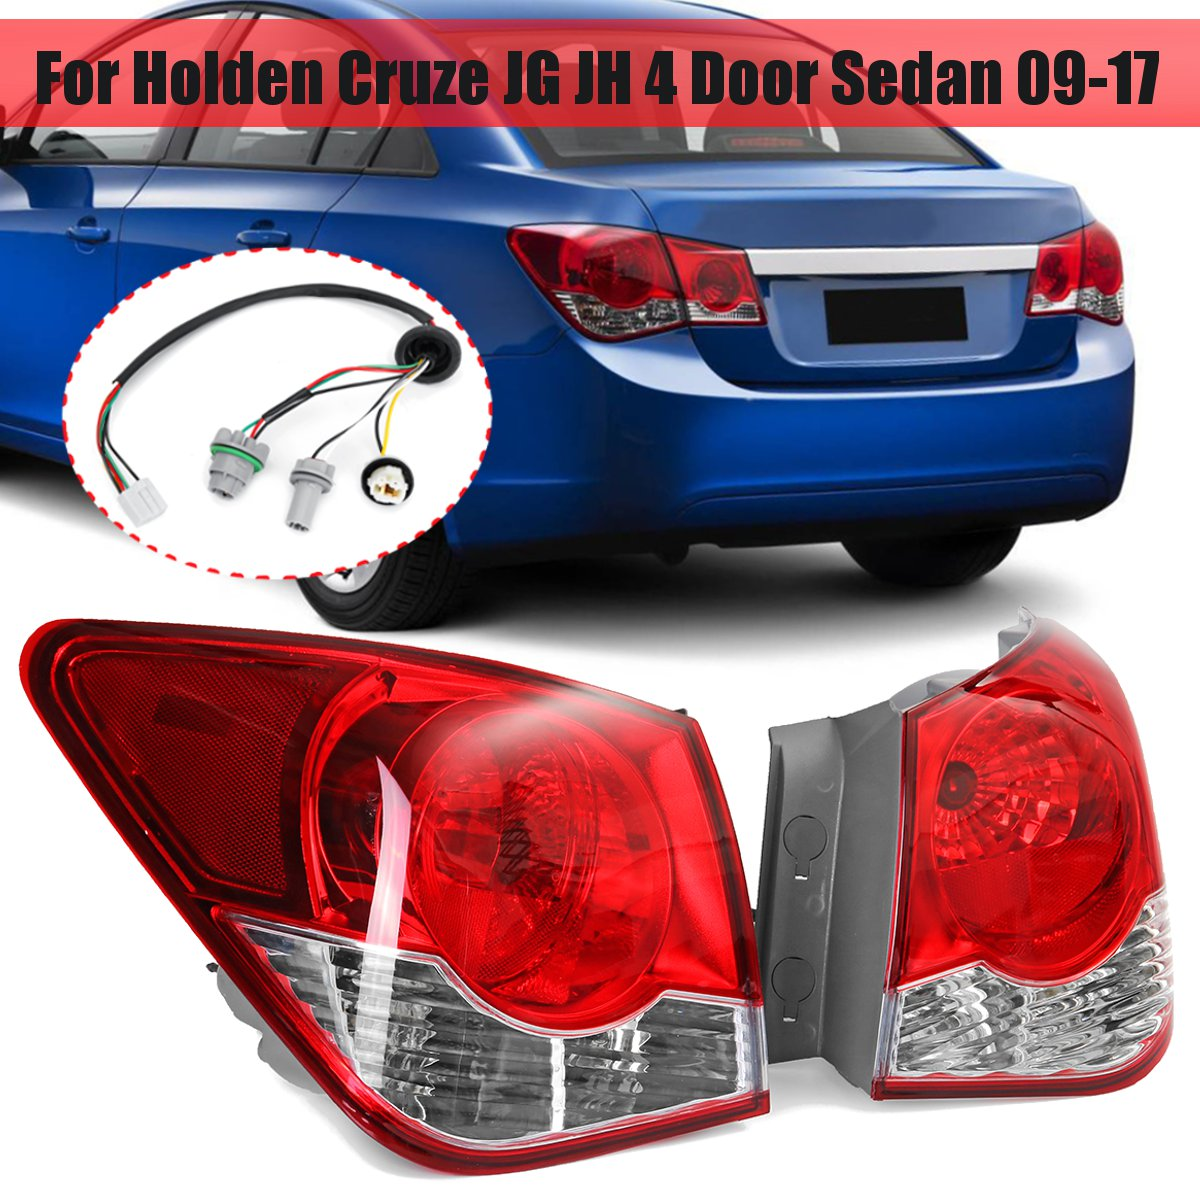 2 rear tail light with wire harness for holden cruze jg jh 4 door sedan 2009 2017 brake lamp for toyota tacoma  [ 1200 x 1200 Pixel ]